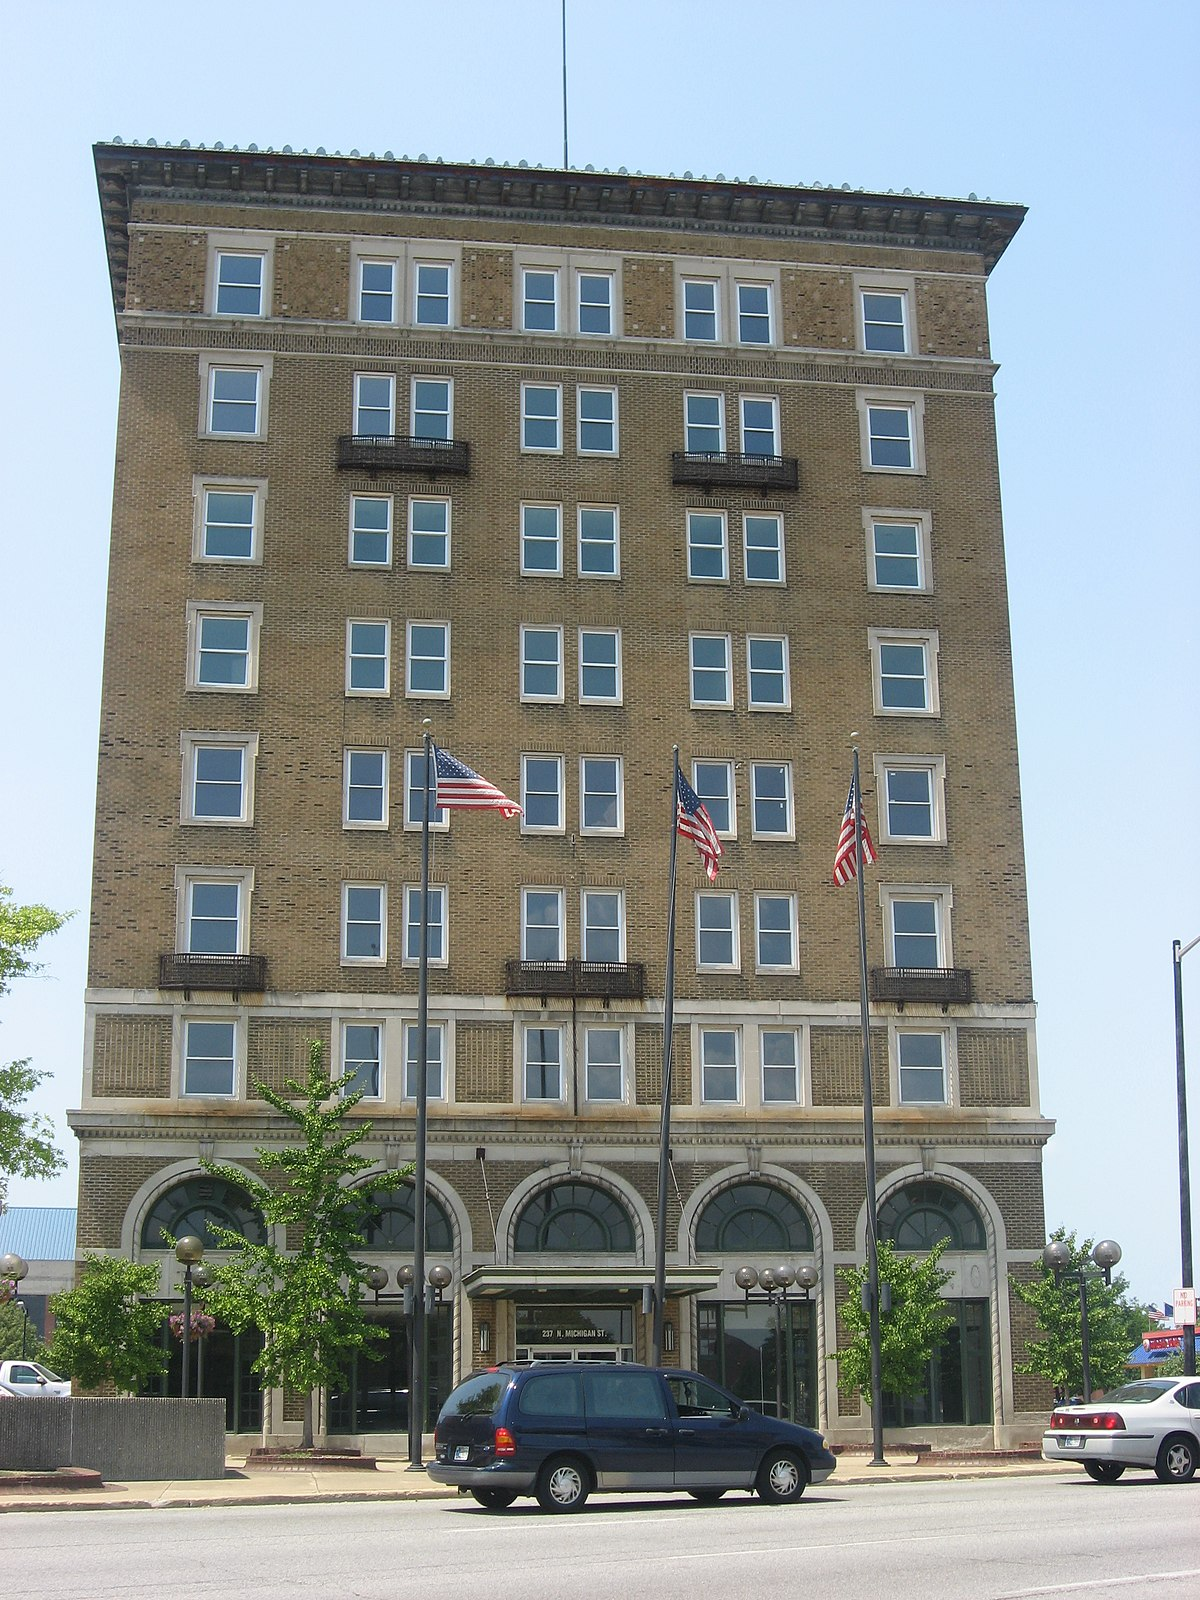 LaSalle Hotel (South Bend, Indiana)